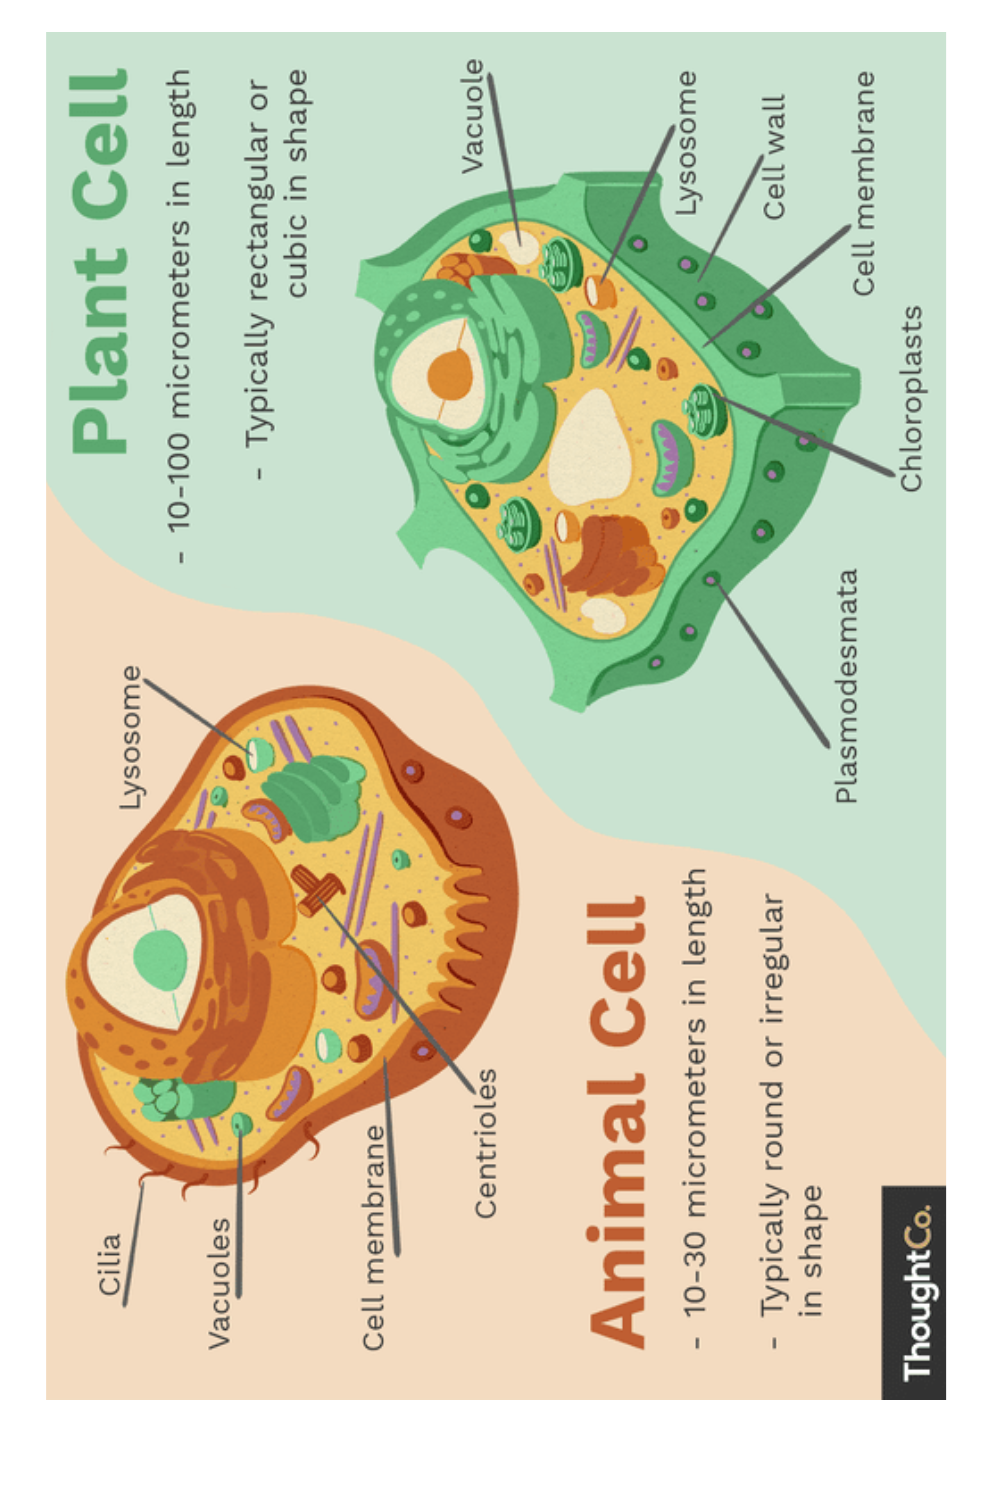 Plant VS Animal Cell Diagram in 2020 | Plant and animal ...